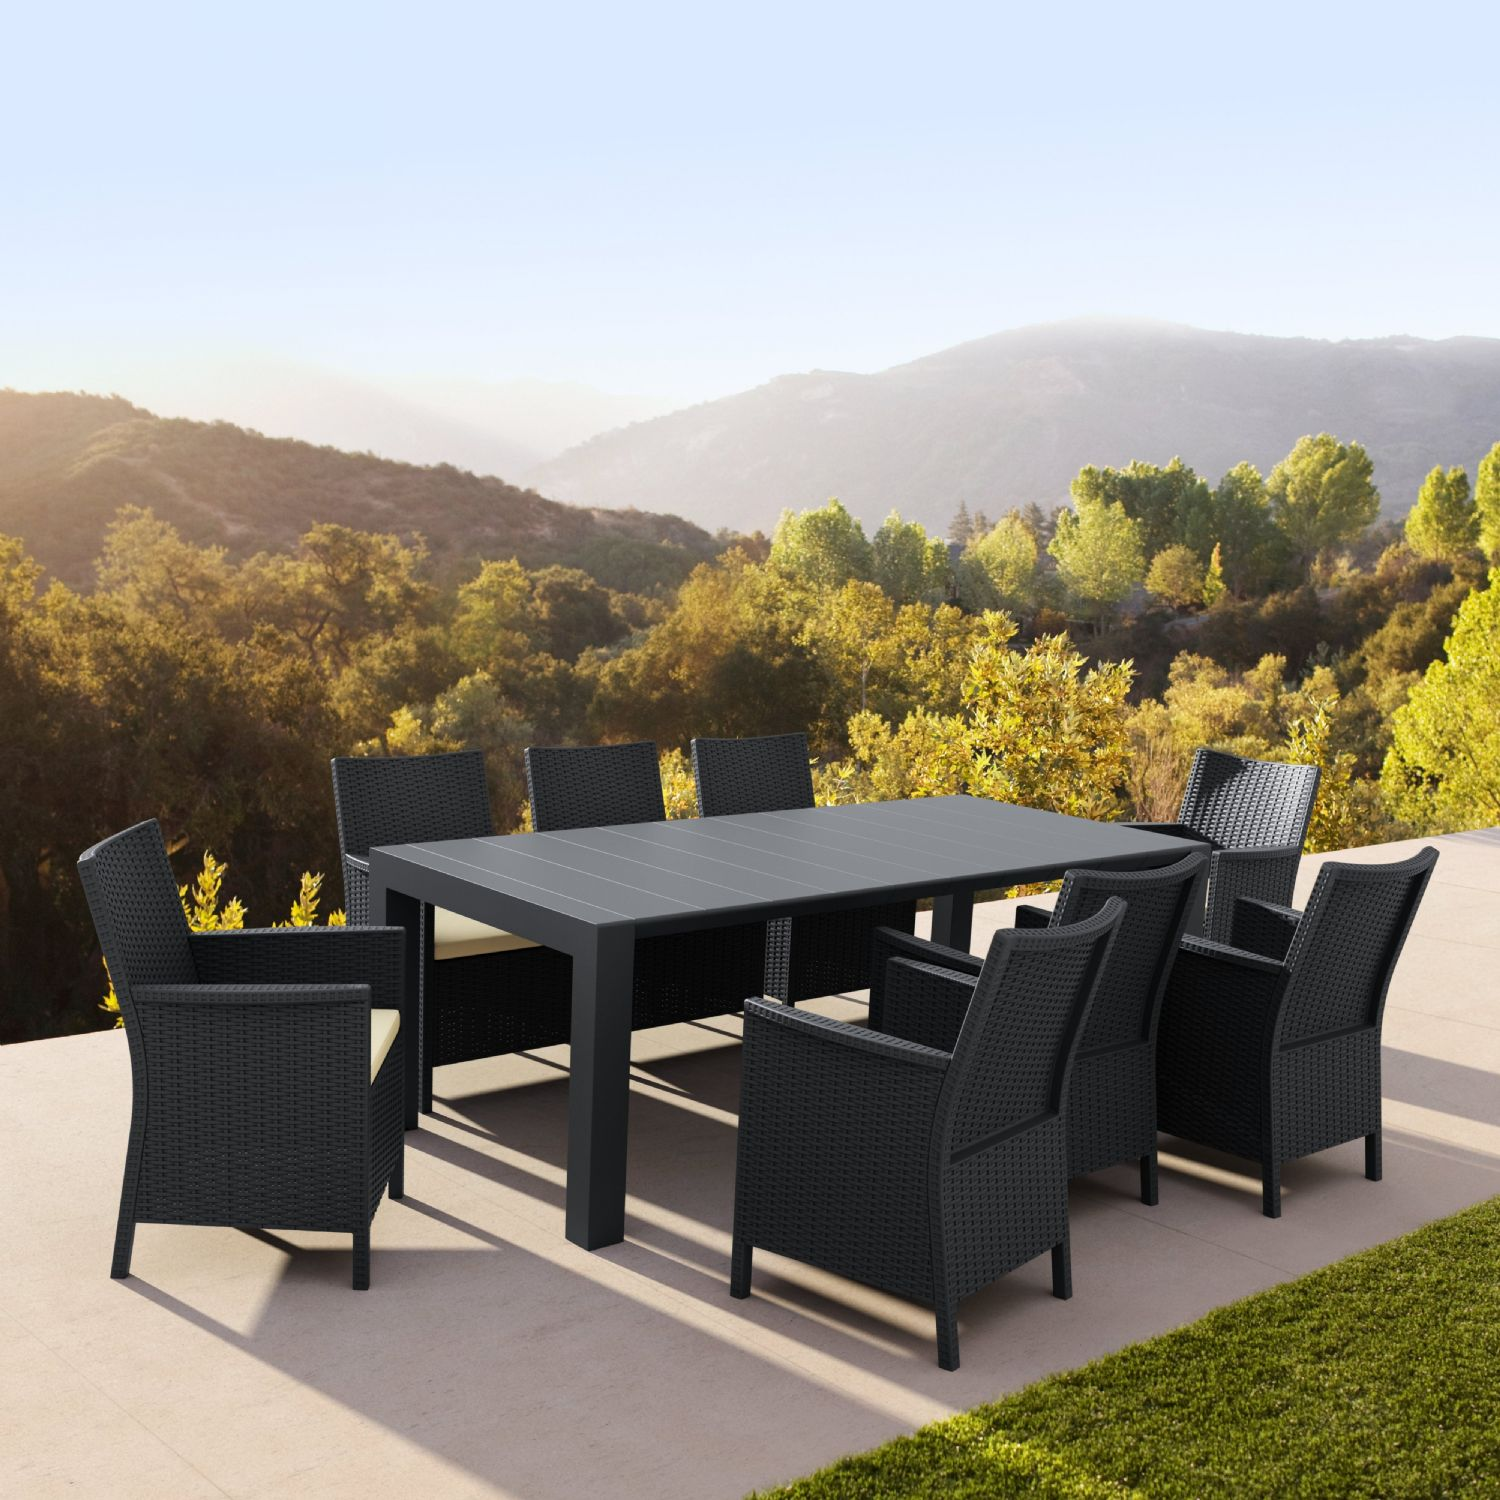 Vegas Outdoor Dining Table Extendable from 70 to 86 inch Dark Gray ISP774-DG - 6